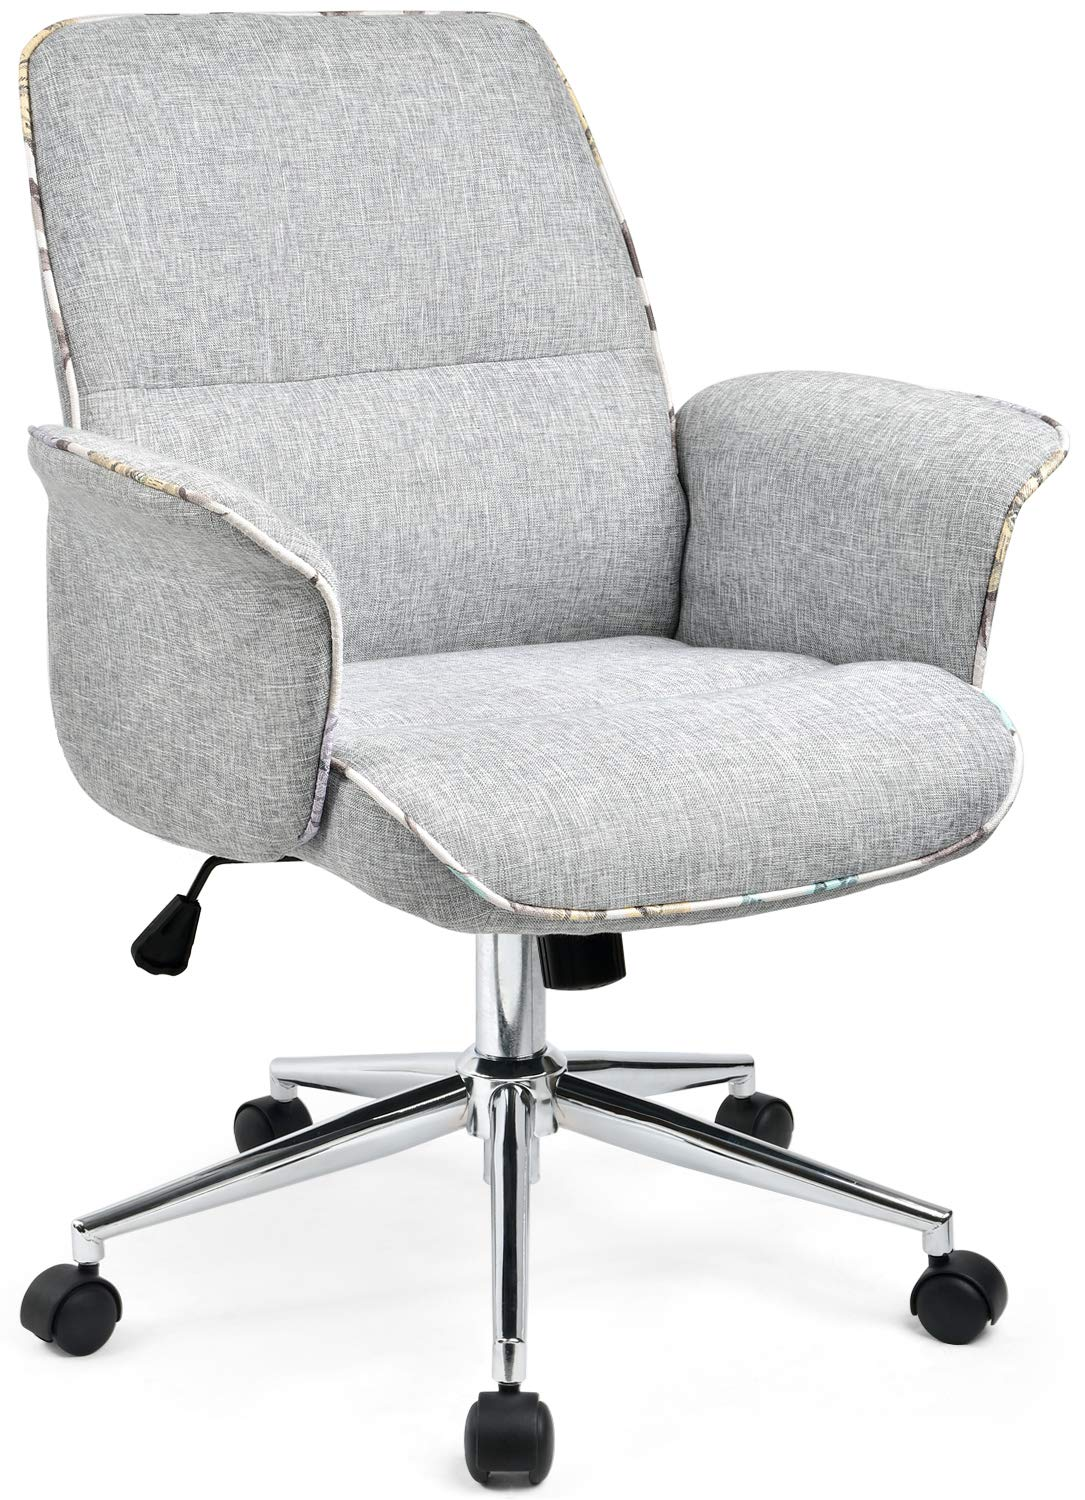 Miraculous Comhoma Home Office Desk Chair Modern Fabric Upholstered Adjustable Mid Back Ergonomic Executive Conference Chair Grey Download Free Architecture Designs Scobabritishbridgeorg